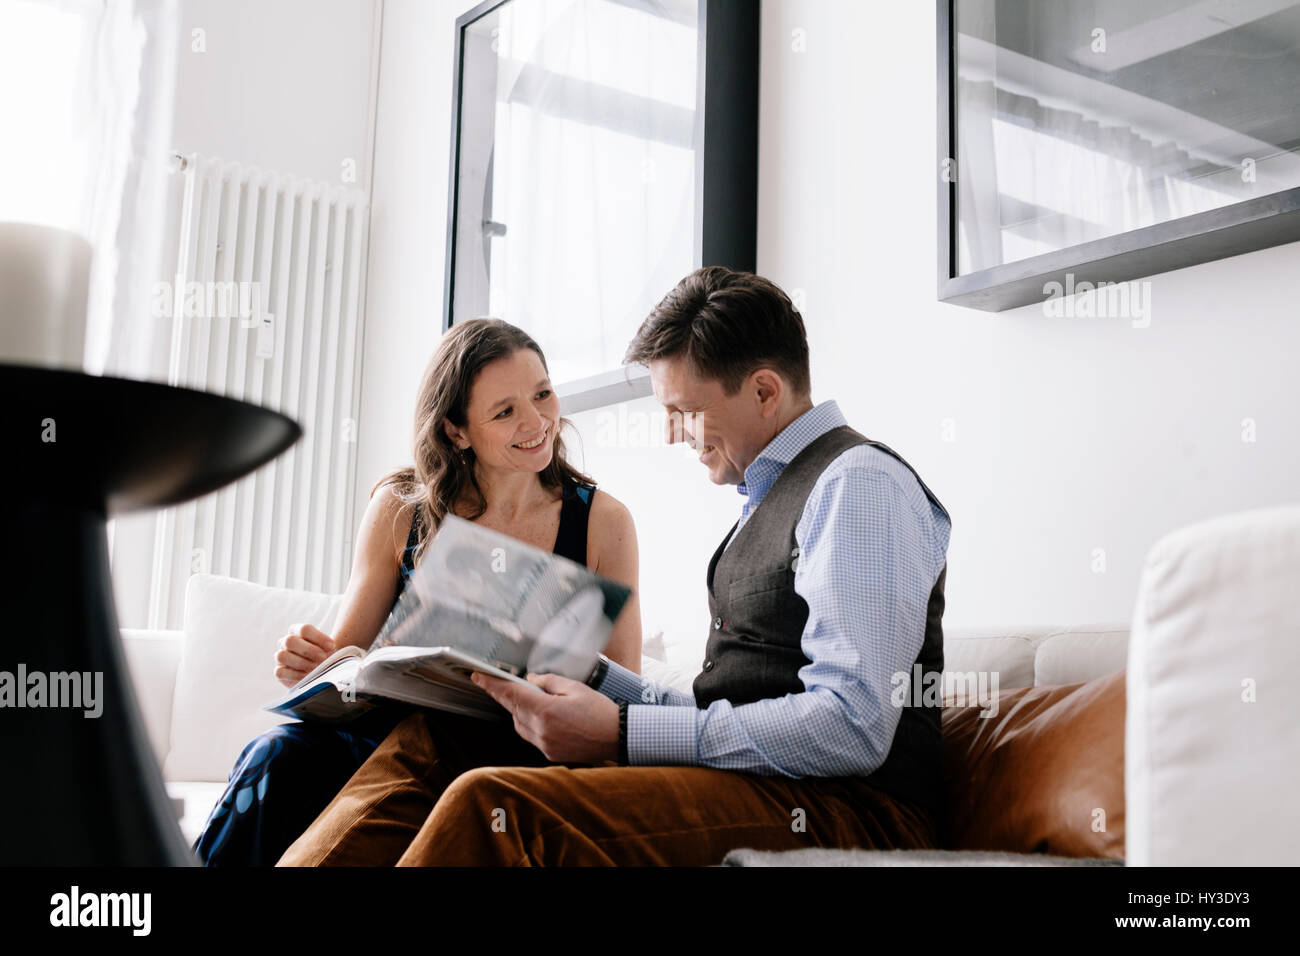 Germany, Couple sitting on sofa and reading book - Stock Image